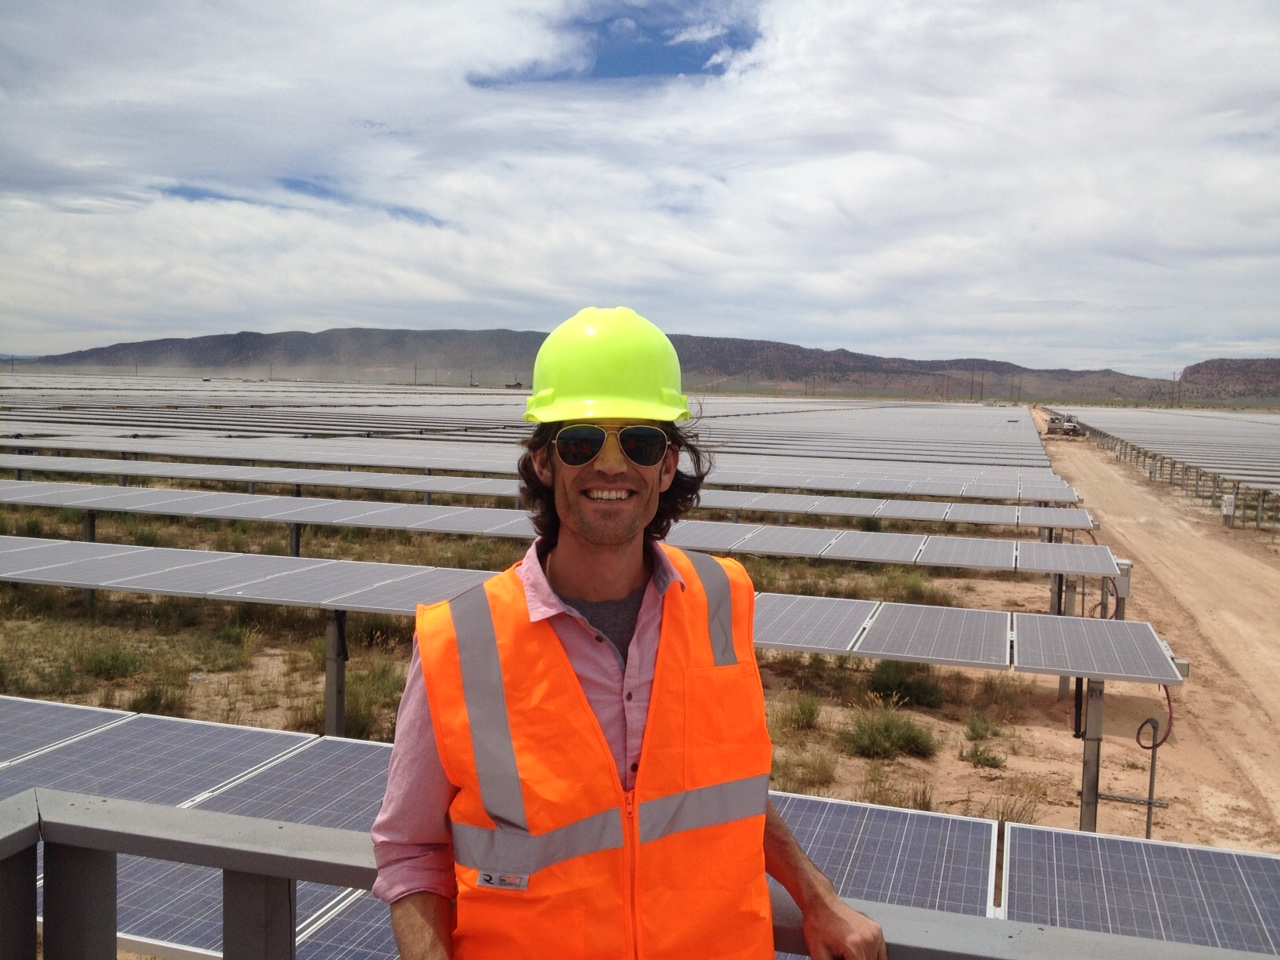 Parowan Solar Tour (Scatec) - Aug 5, 2015